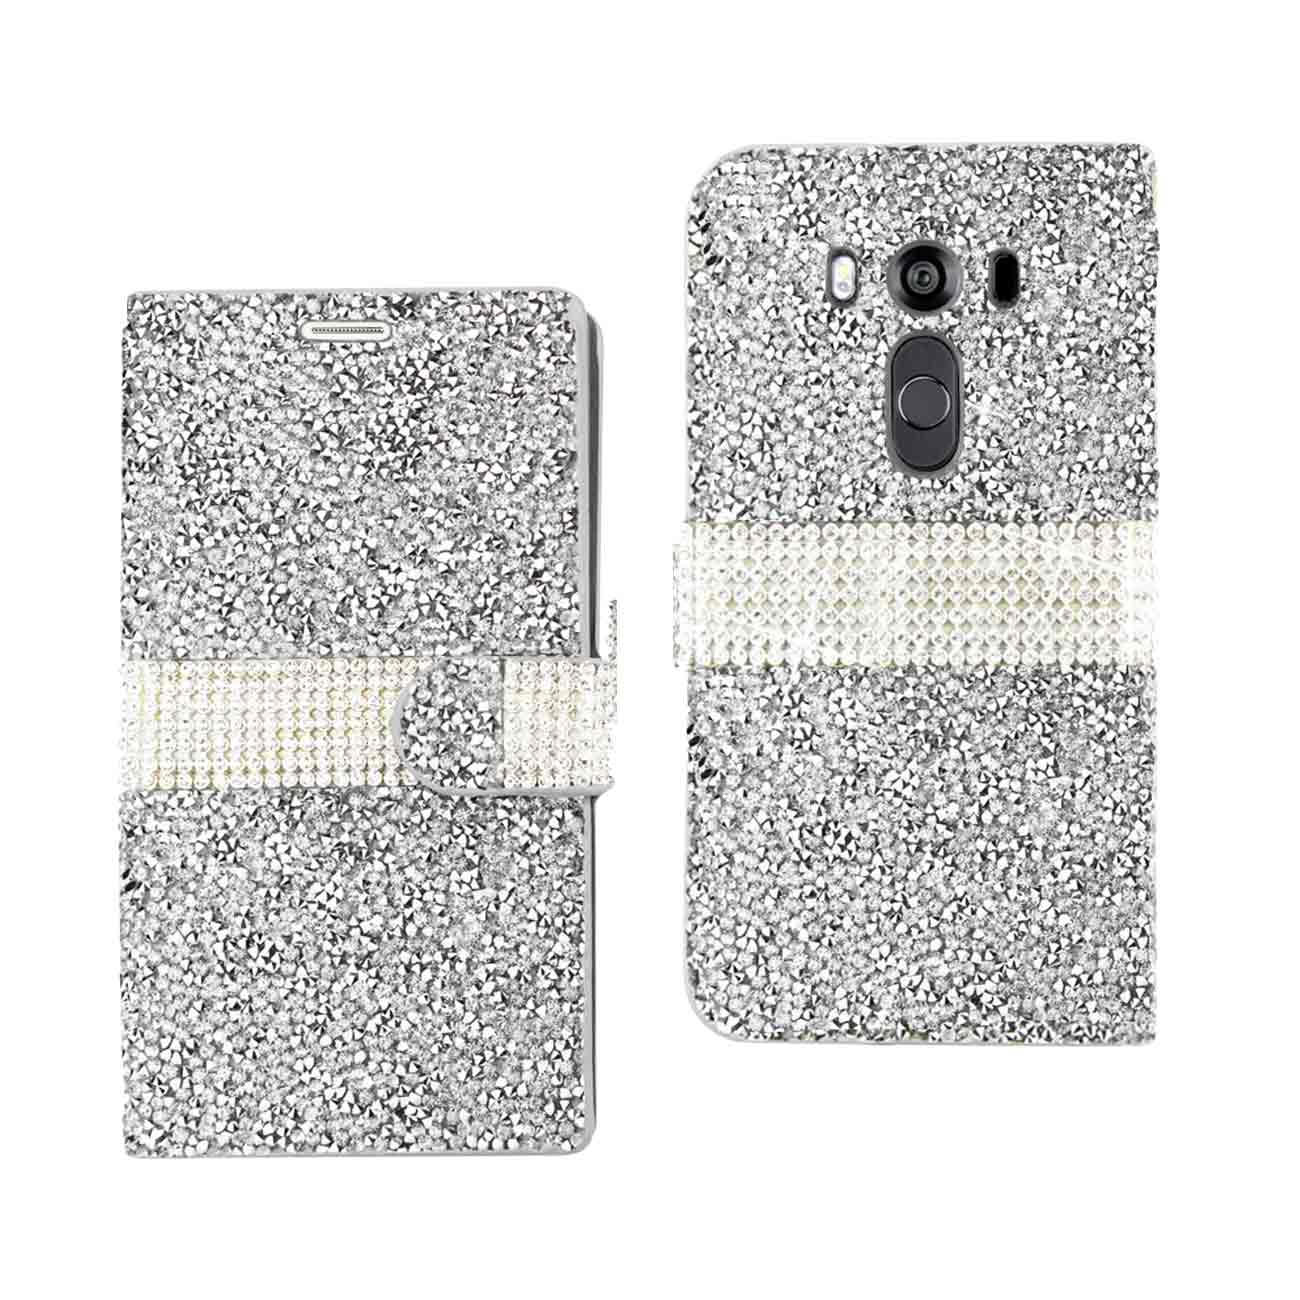 LG V10 JEWELRY RHINESTONE WALLET CASE IN SILVER